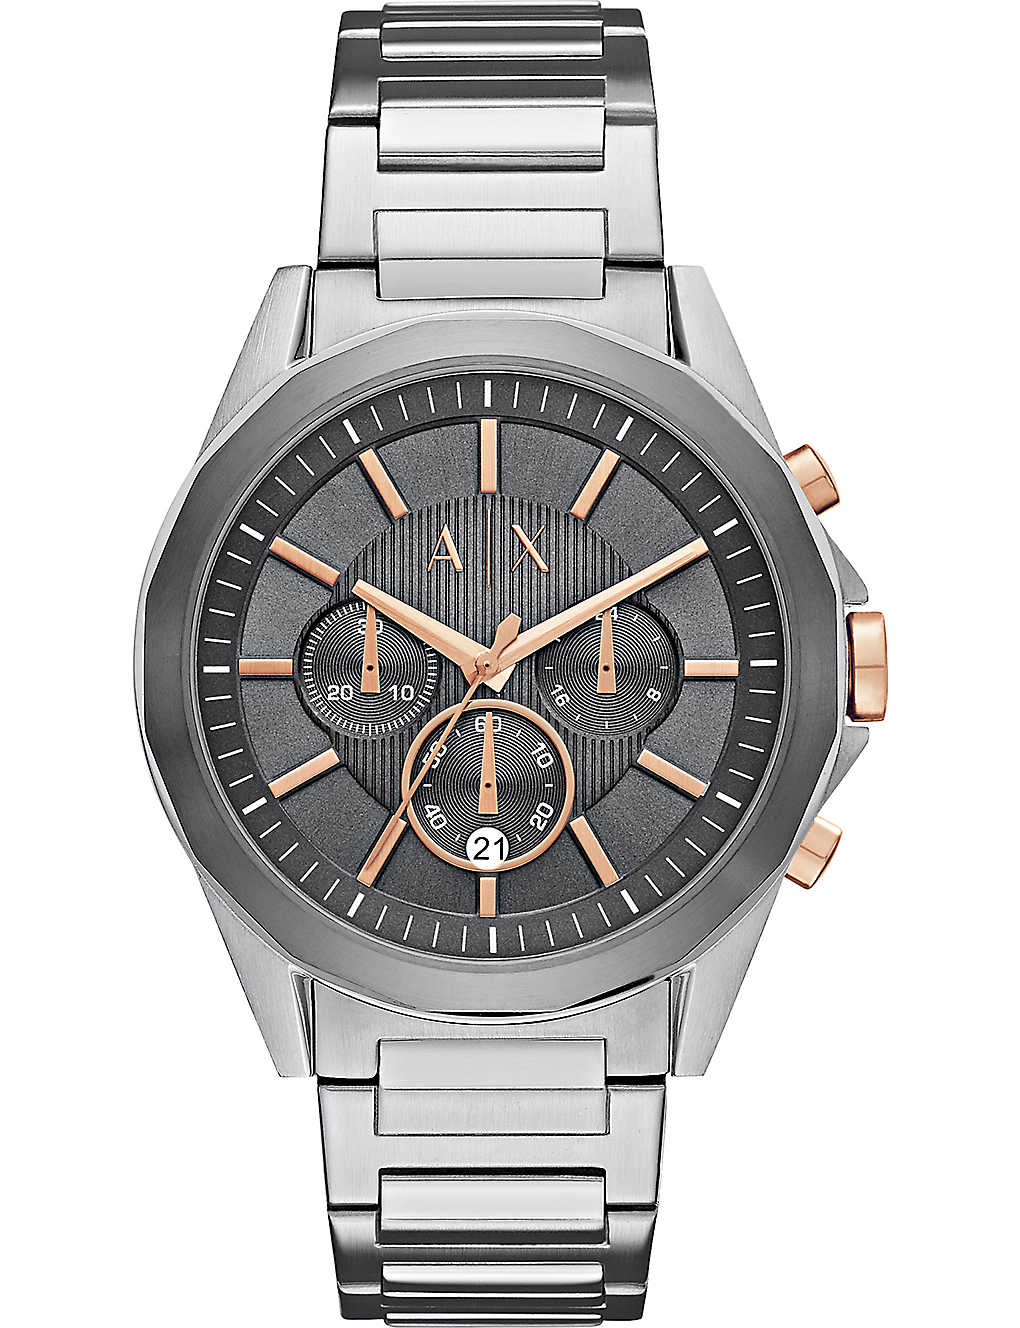 870a6df9e ARMANI EXCHANGE - AX2606 stainless steel chronograph watch ...